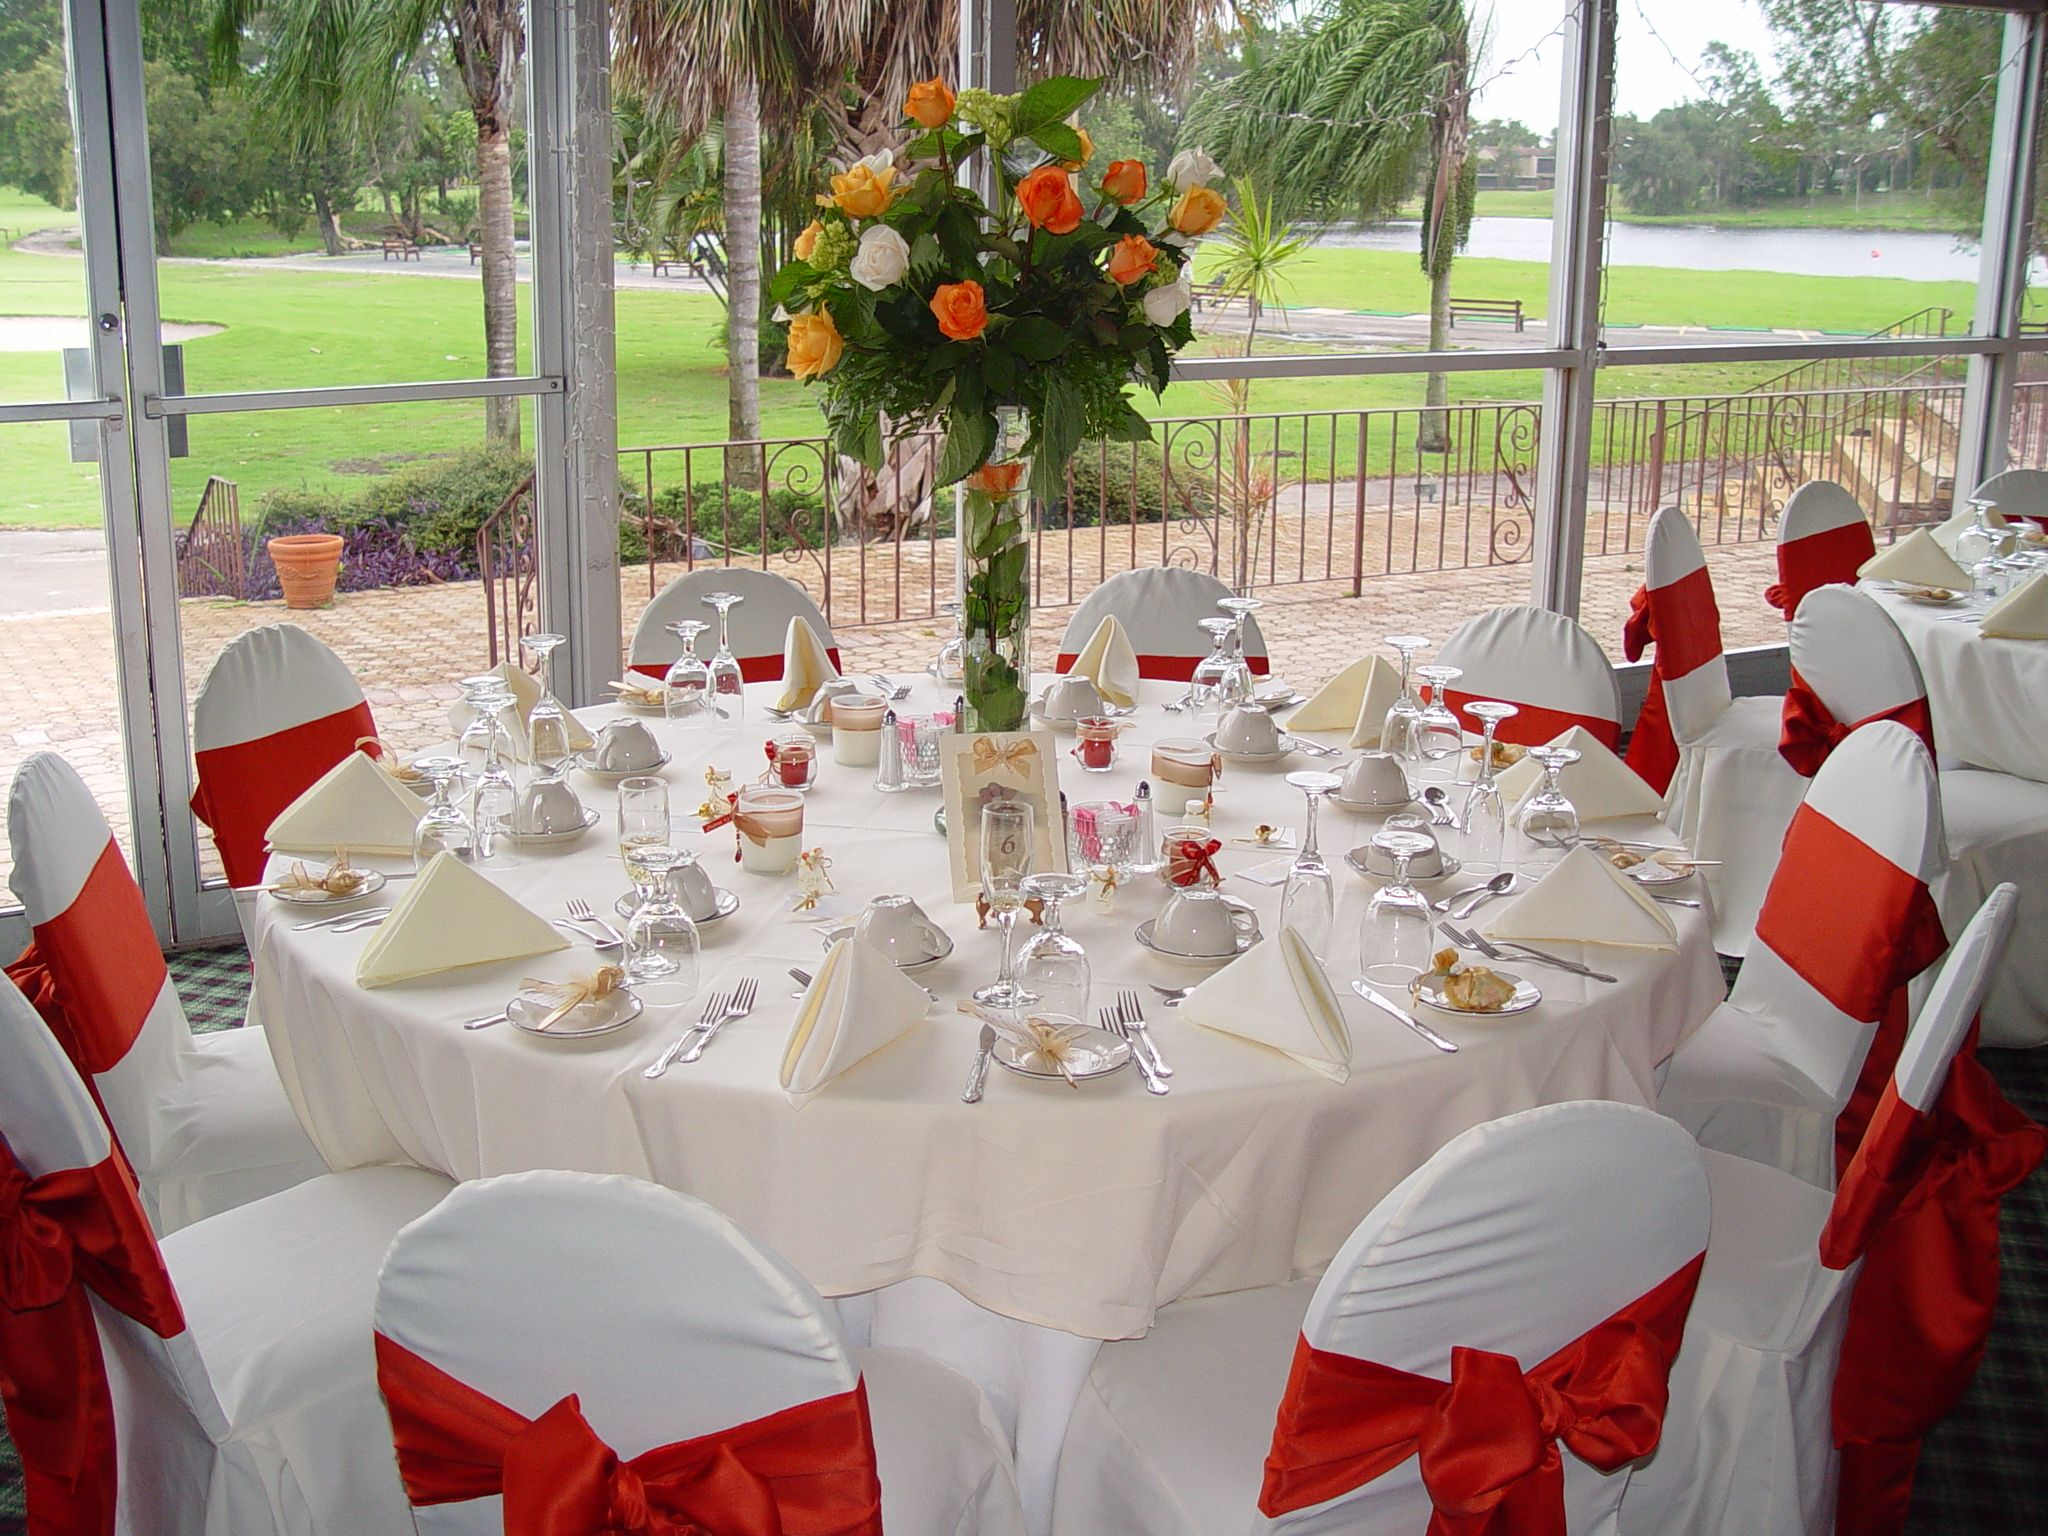 Explore Wedding Reception Table Decorations And More